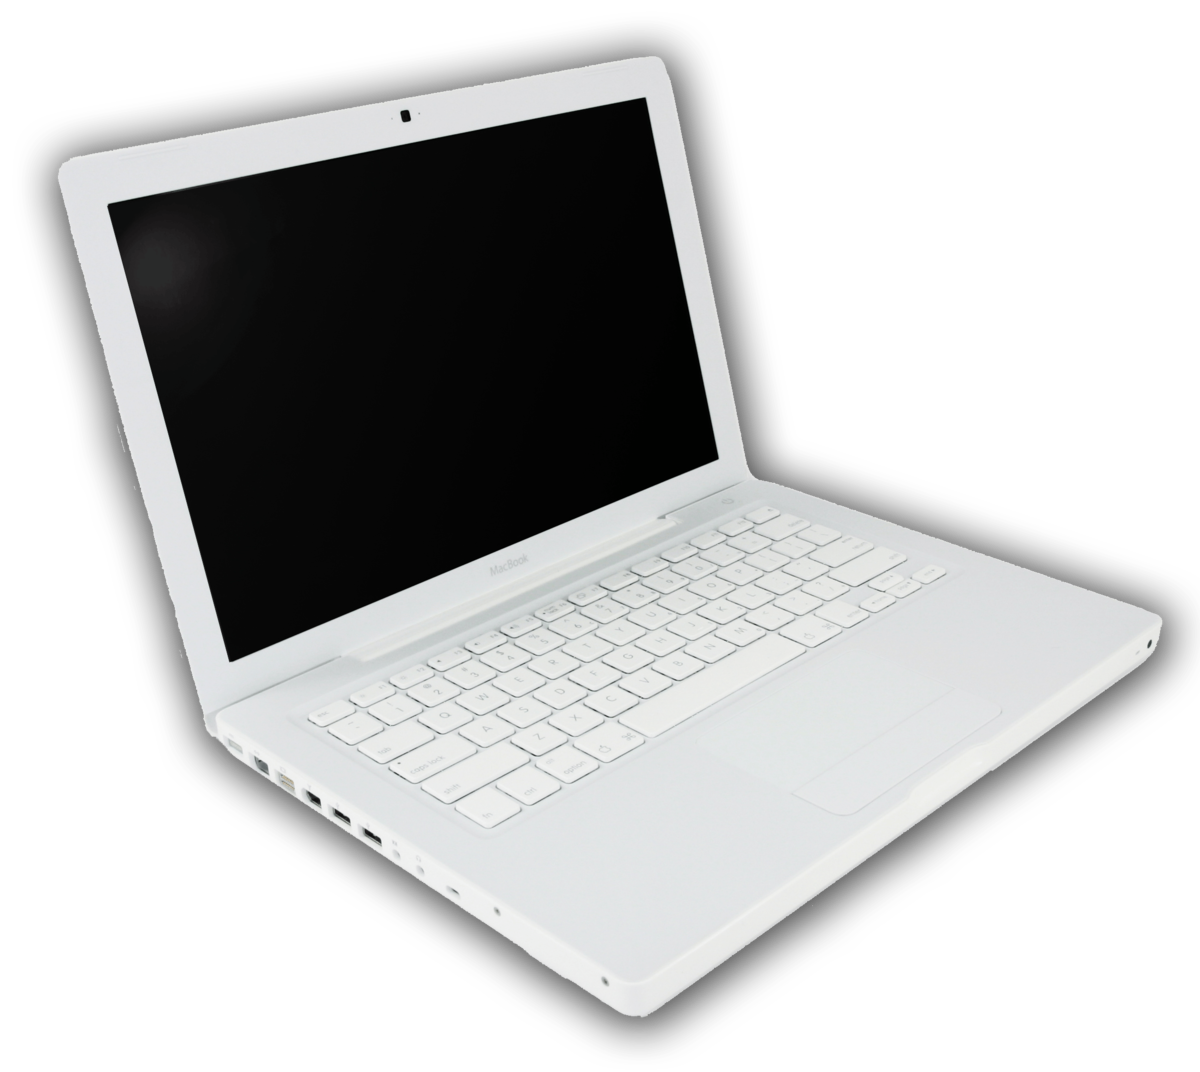 White And Resolution Macbook Png Clipart image #47622